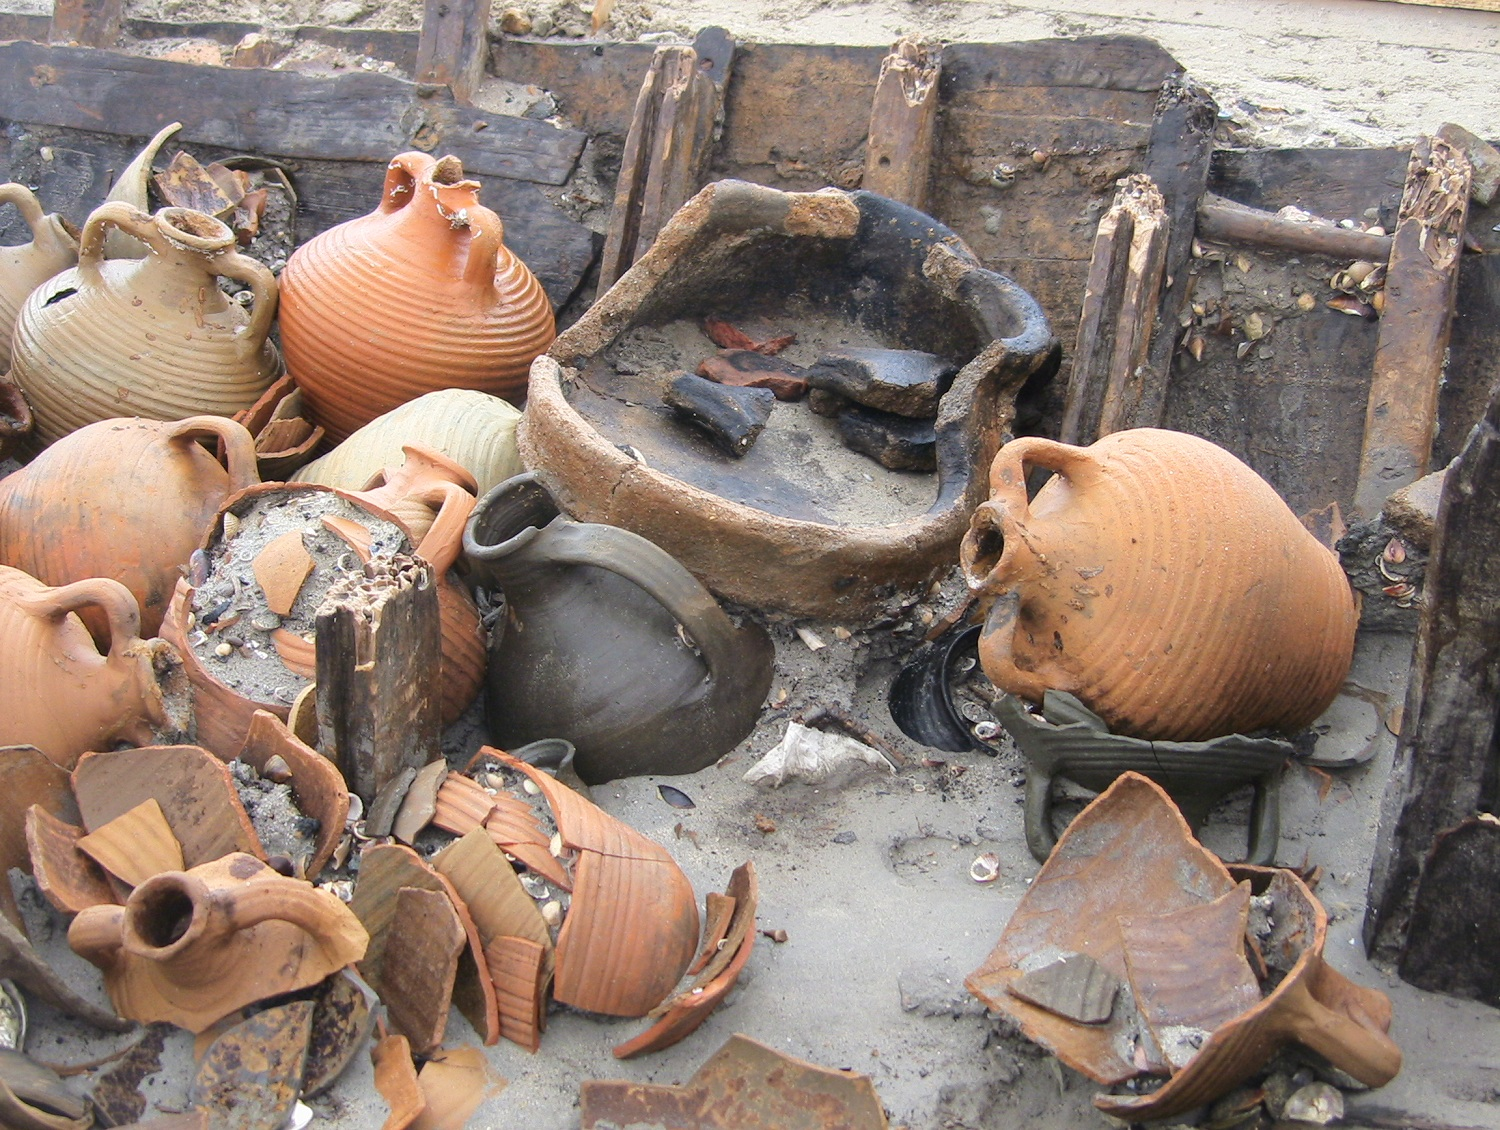 Personal belongings of the vessel's captain: Brazier, jug, casserole bowl, beaker, two small amphorae and cherry stone inside a read basket.